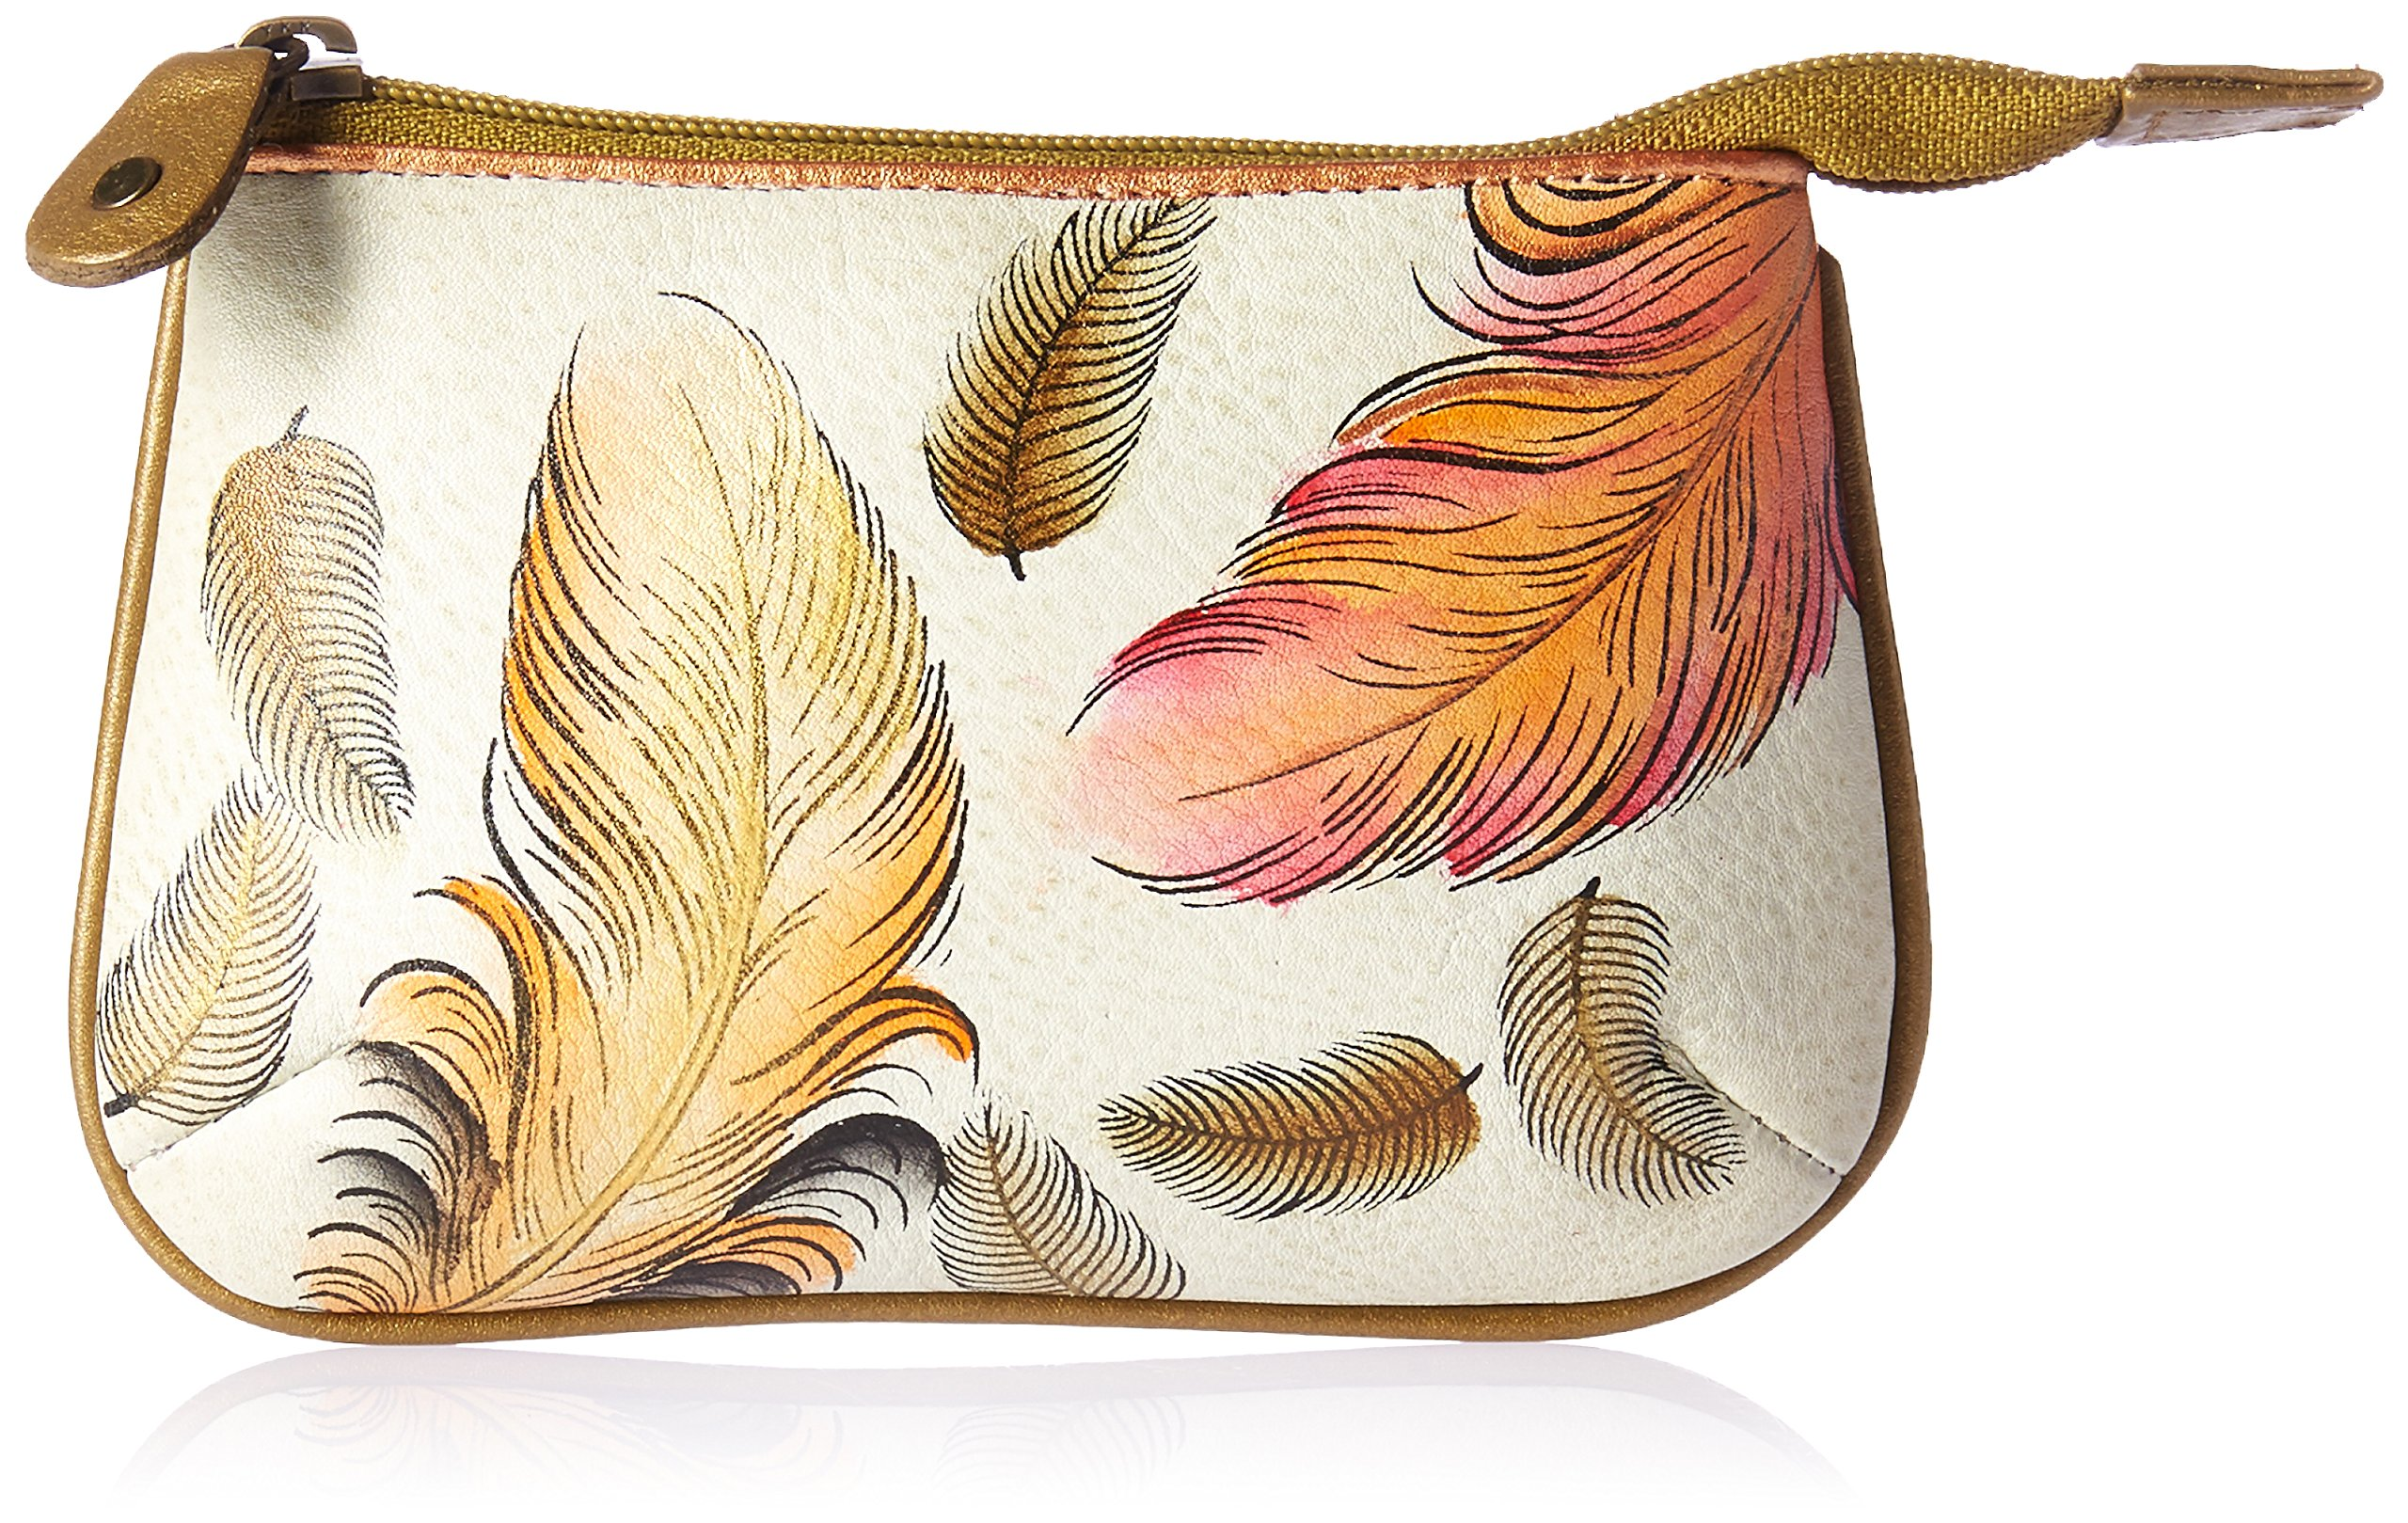 Anuschka Women's Handpainted Leather Medium Coin Purse-Floating Feathers Ivory, One Size